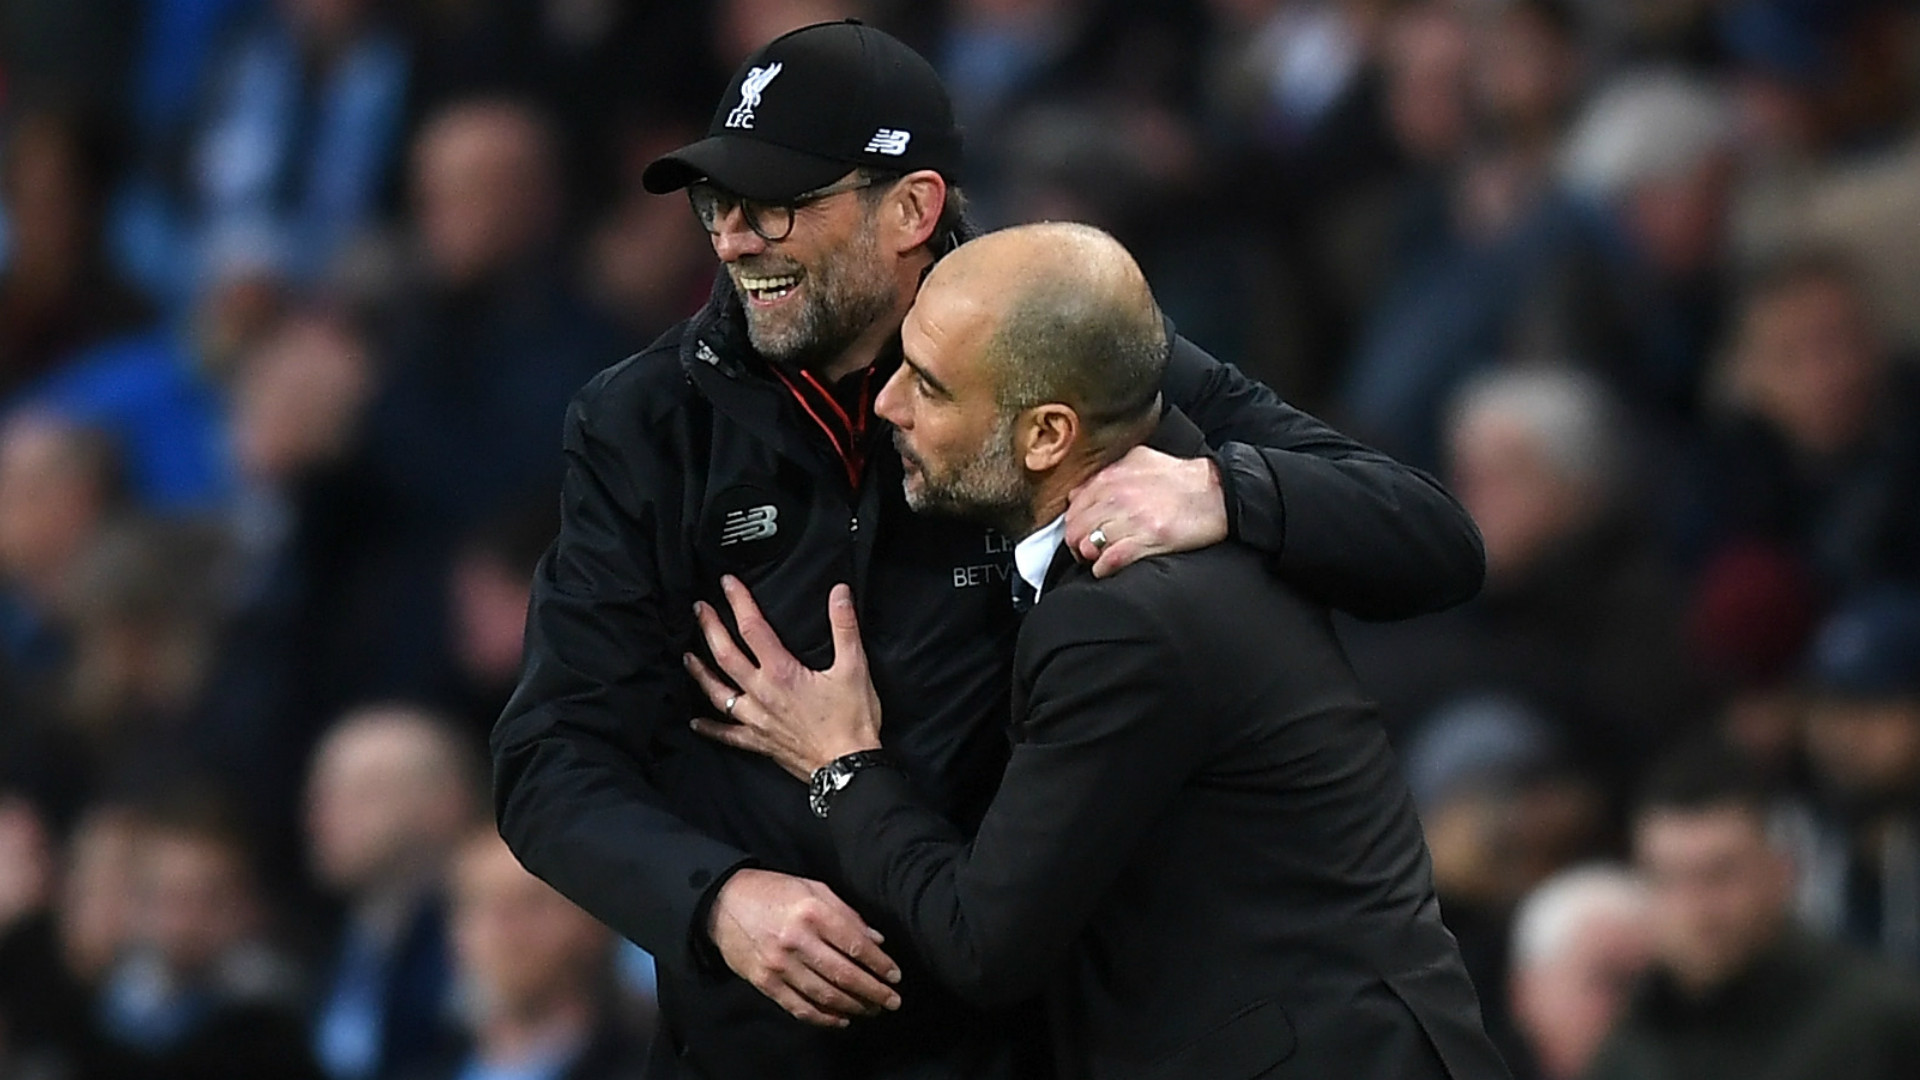 Guardiola is the World's Best Manager - Liverpool